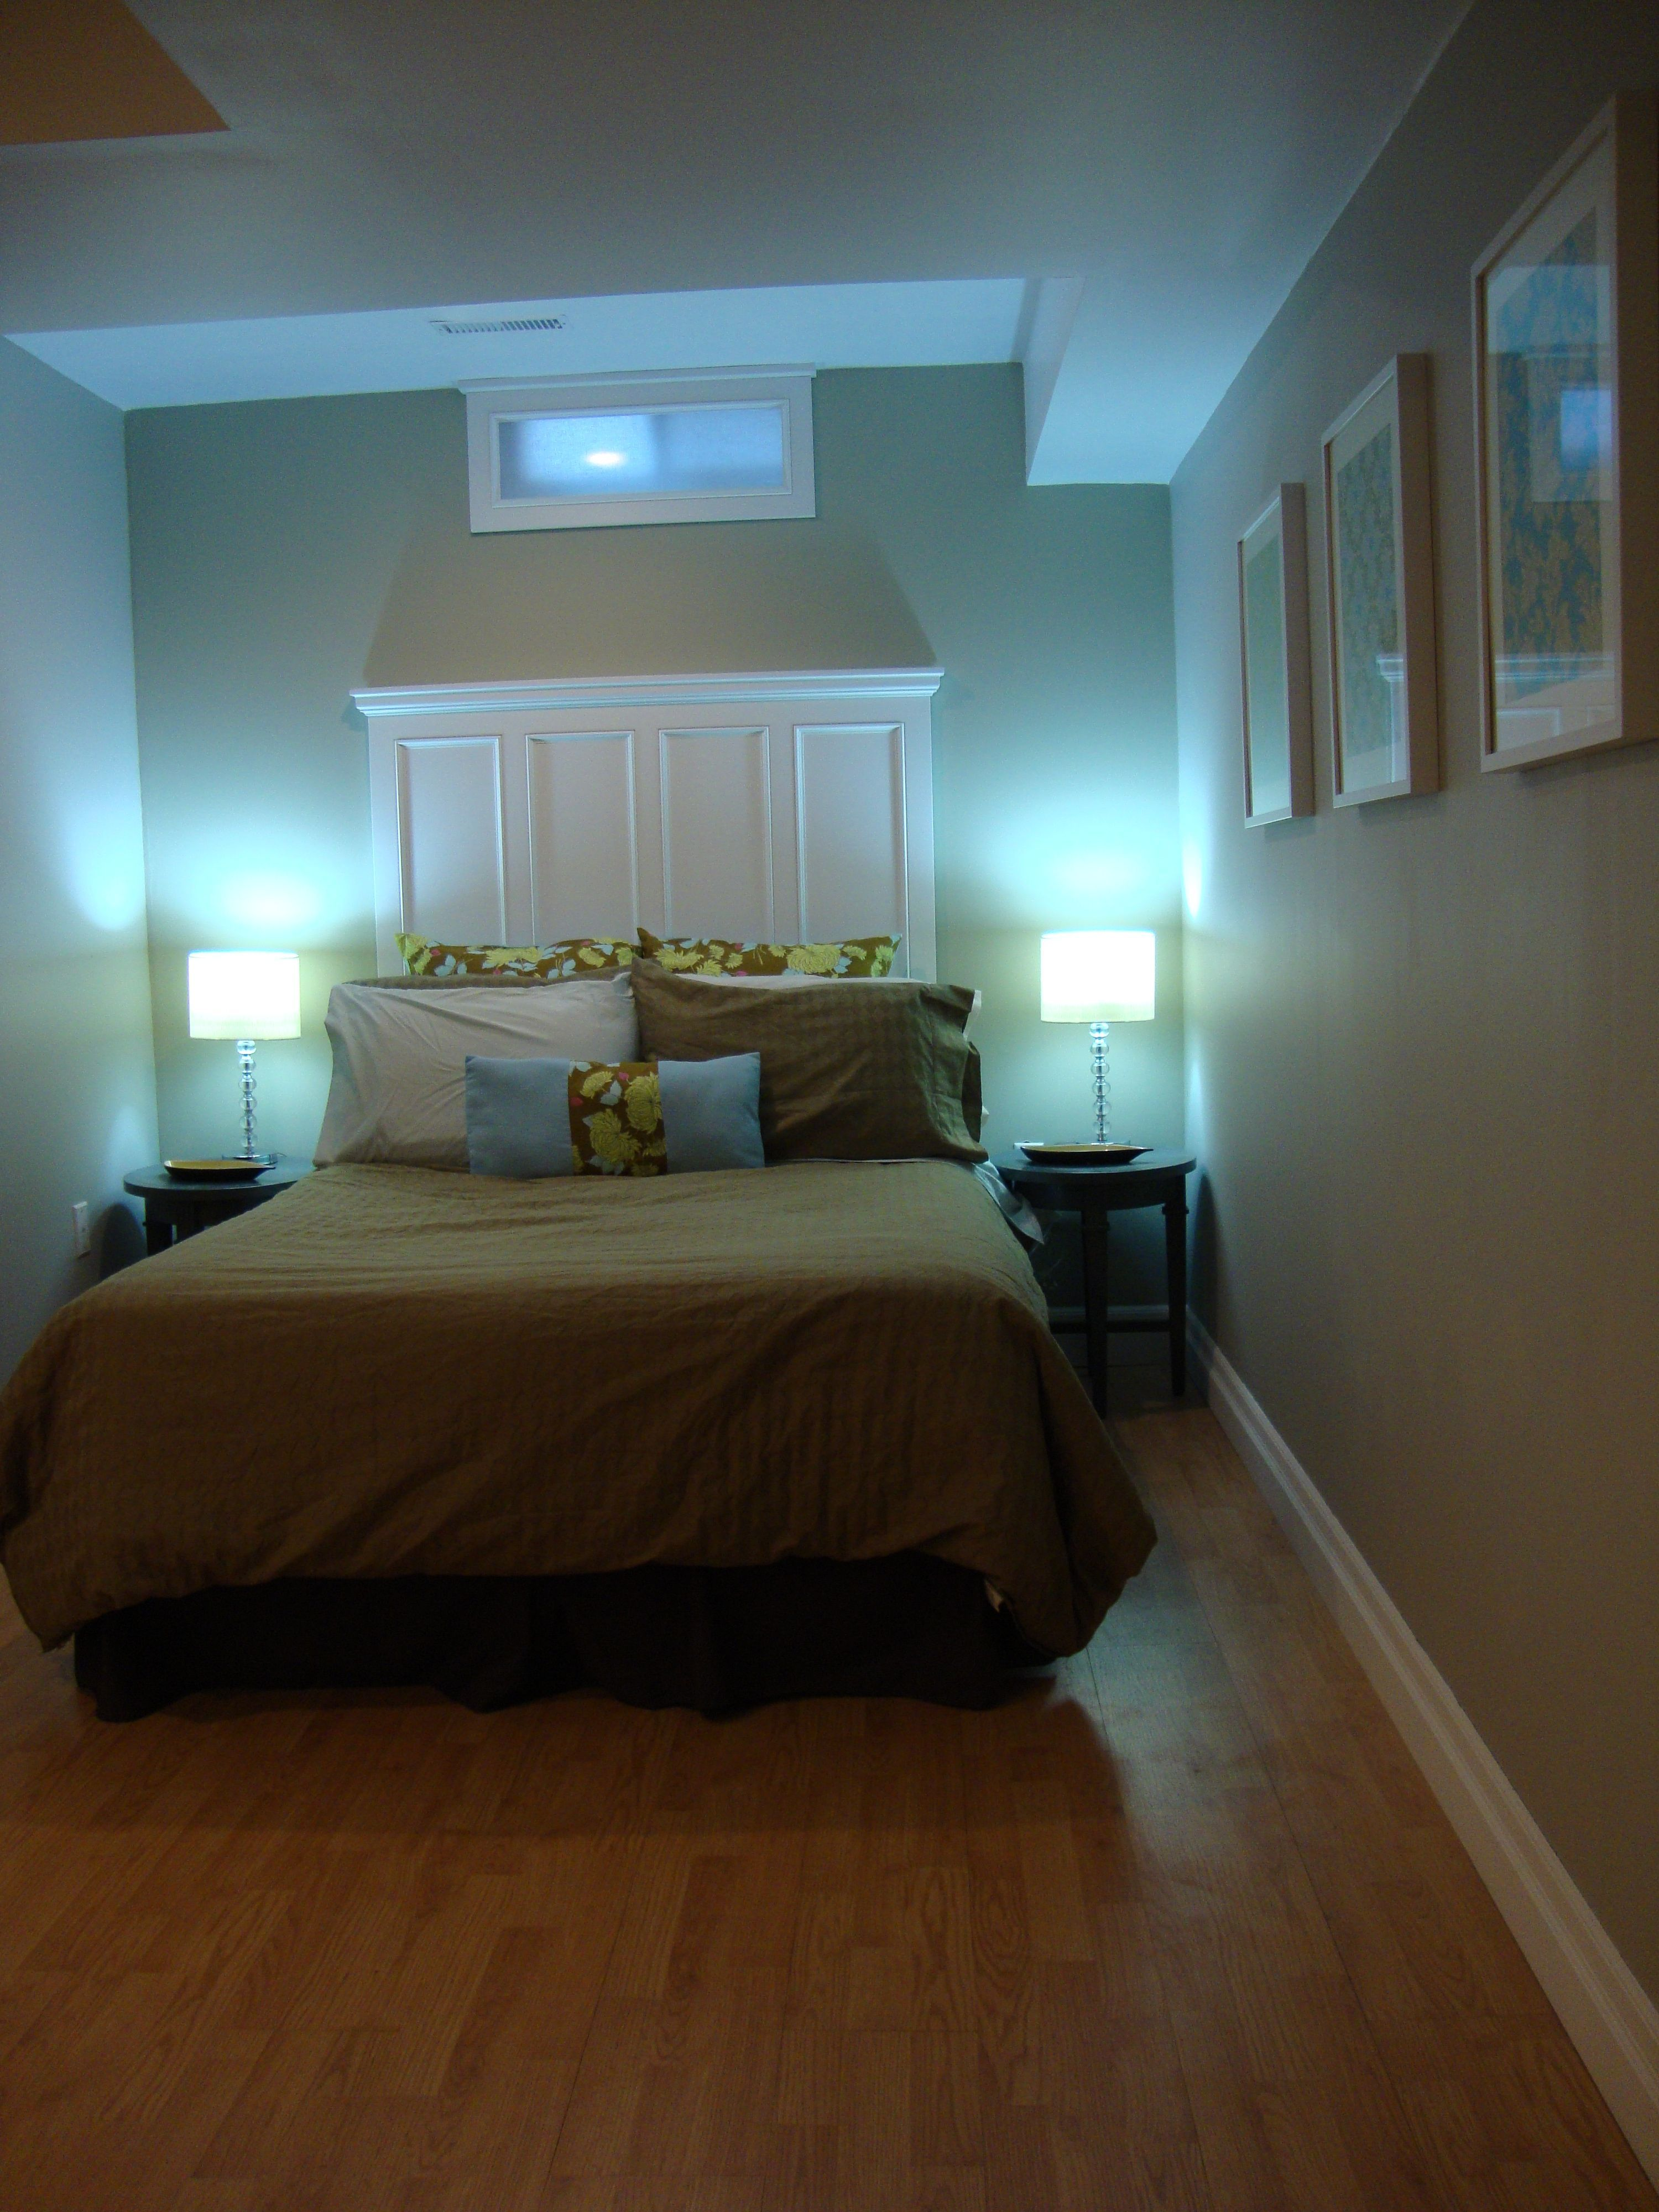 Basement Bedroom Ideas Remodeling And Decorating Ideas On A Budget Master Bedrooms Decor Basement Master Bedroom Basement Bedrooms